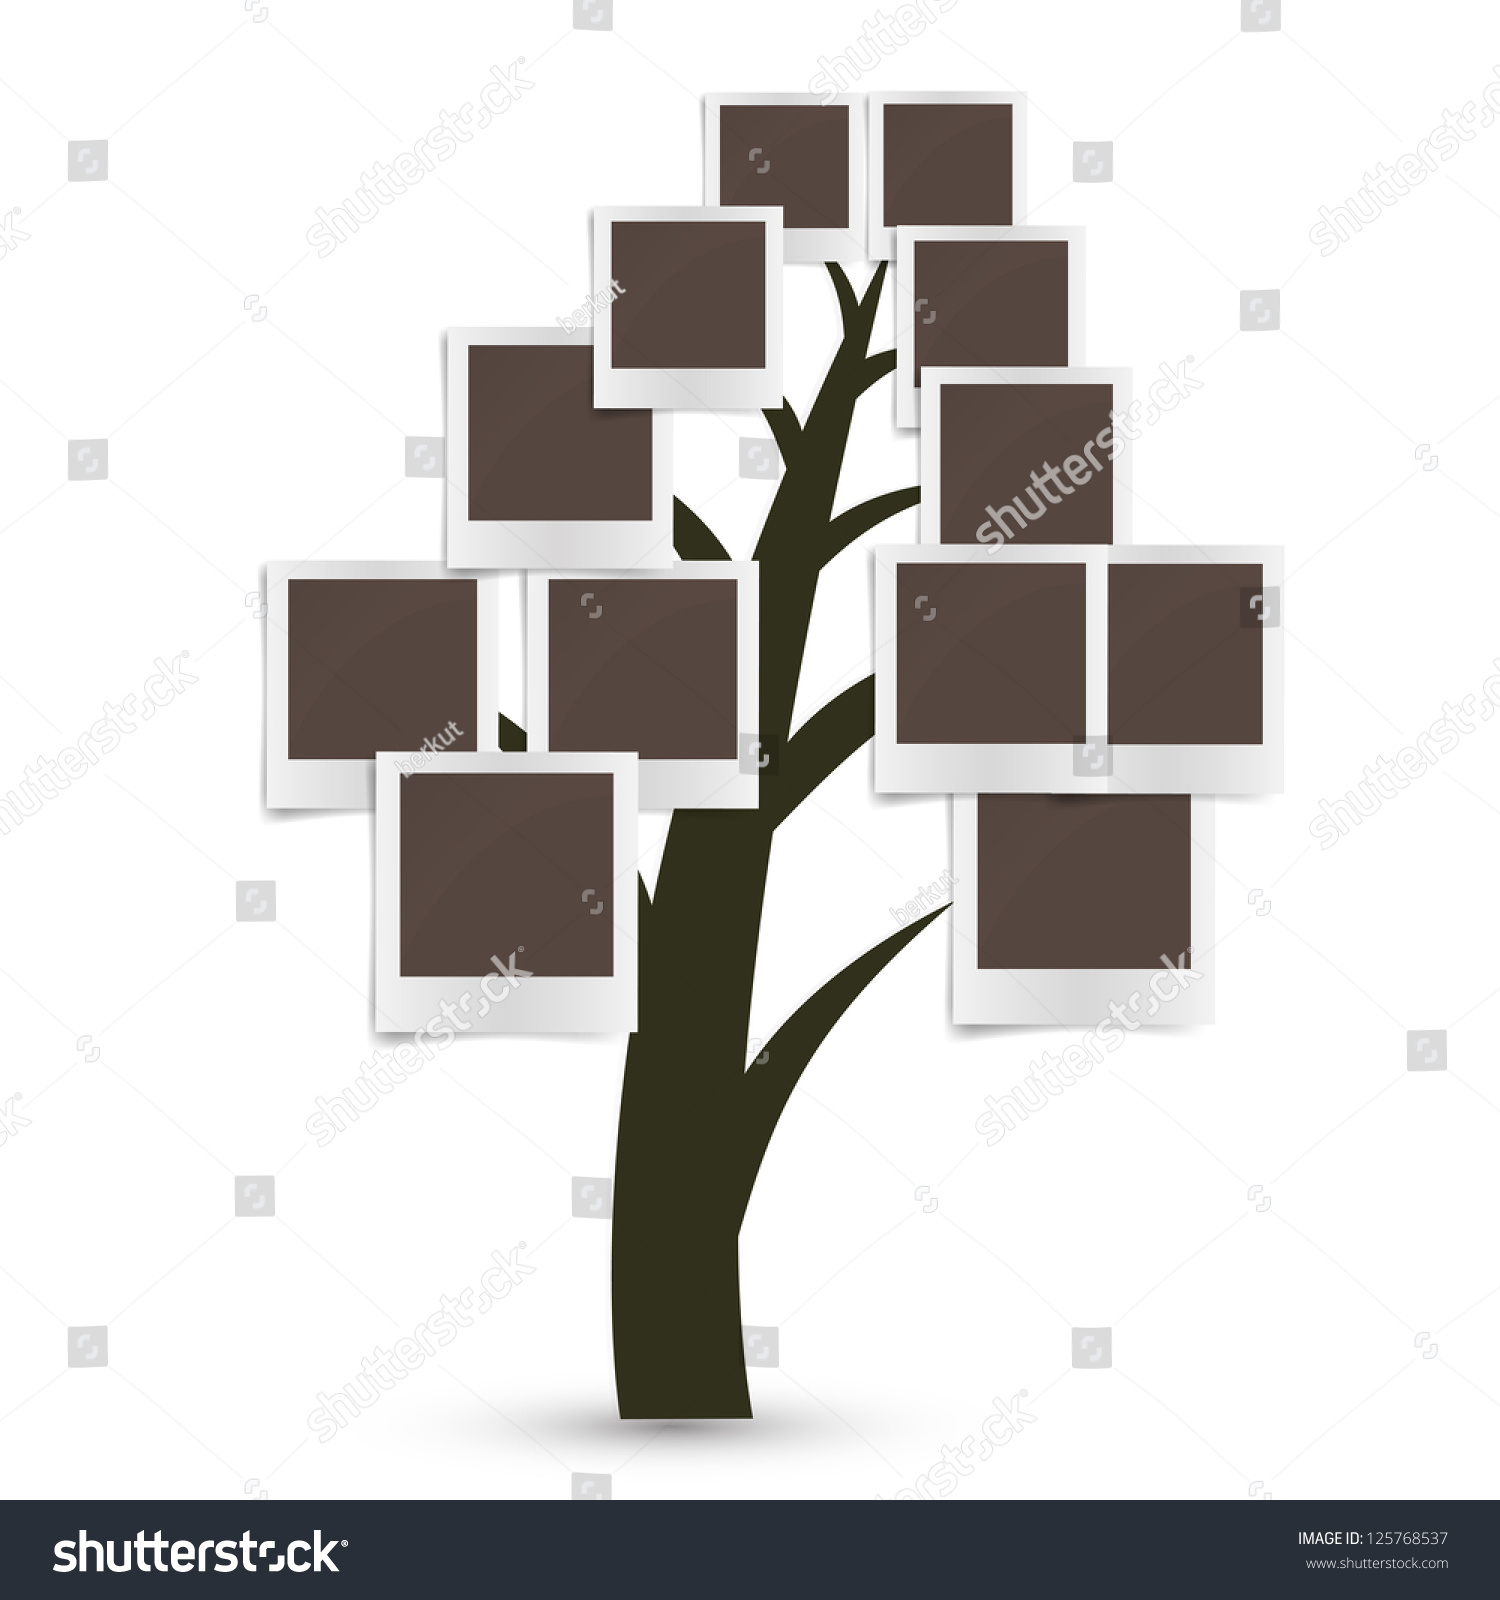 Royalty Free Stock Illustration Of Family Tree Design Insert Your